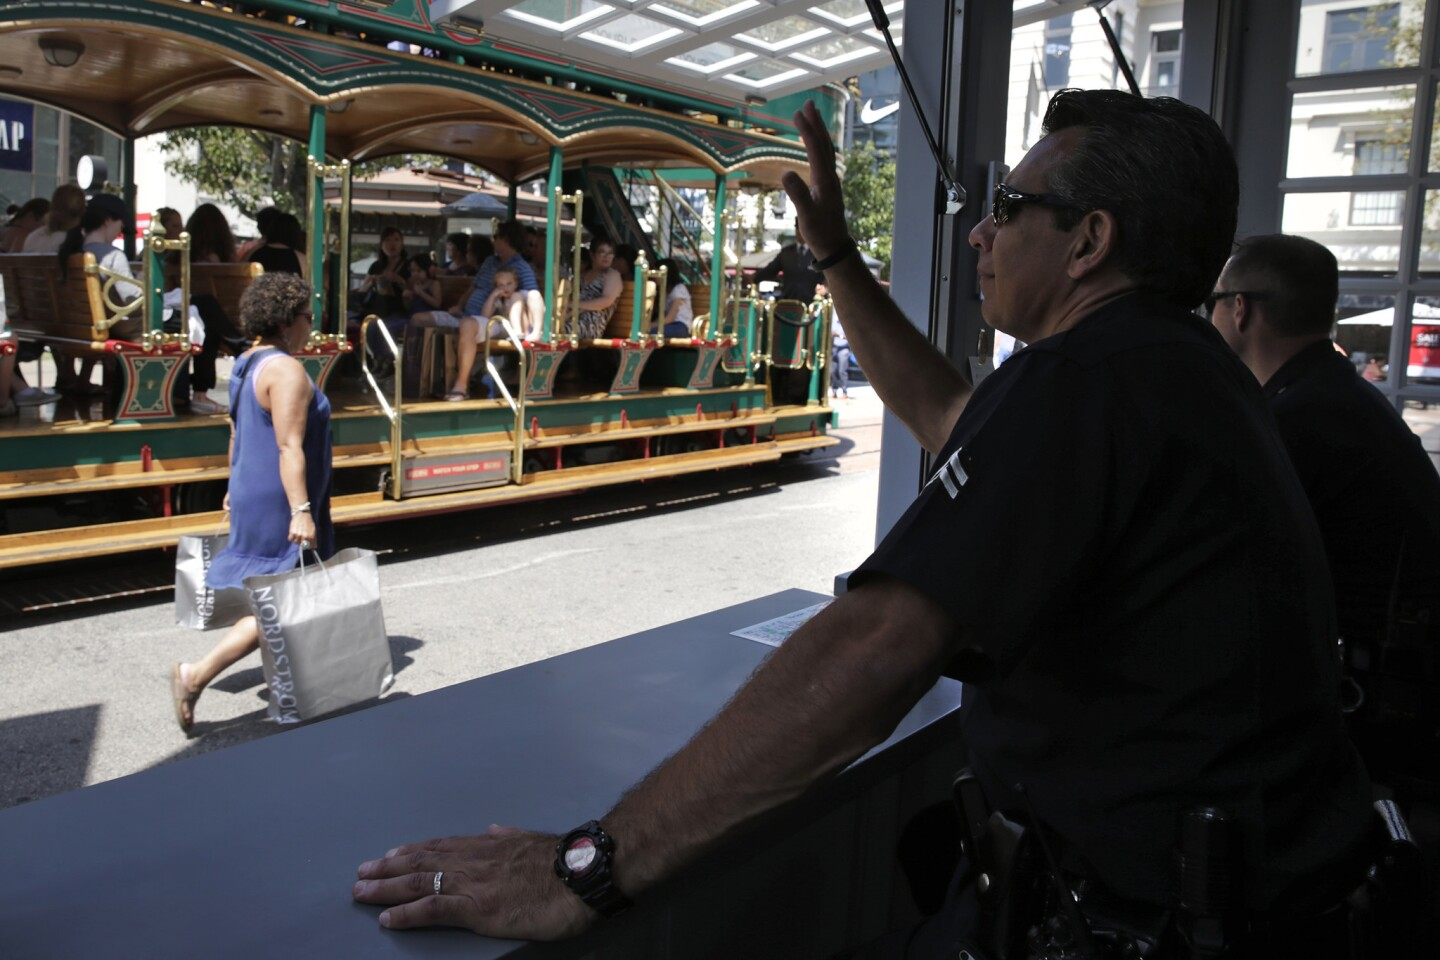 Los Angeles Police Officers Michael Acosta, left, and Thomas McClaughlin watch over the Grove shopping center from a police kiosk.